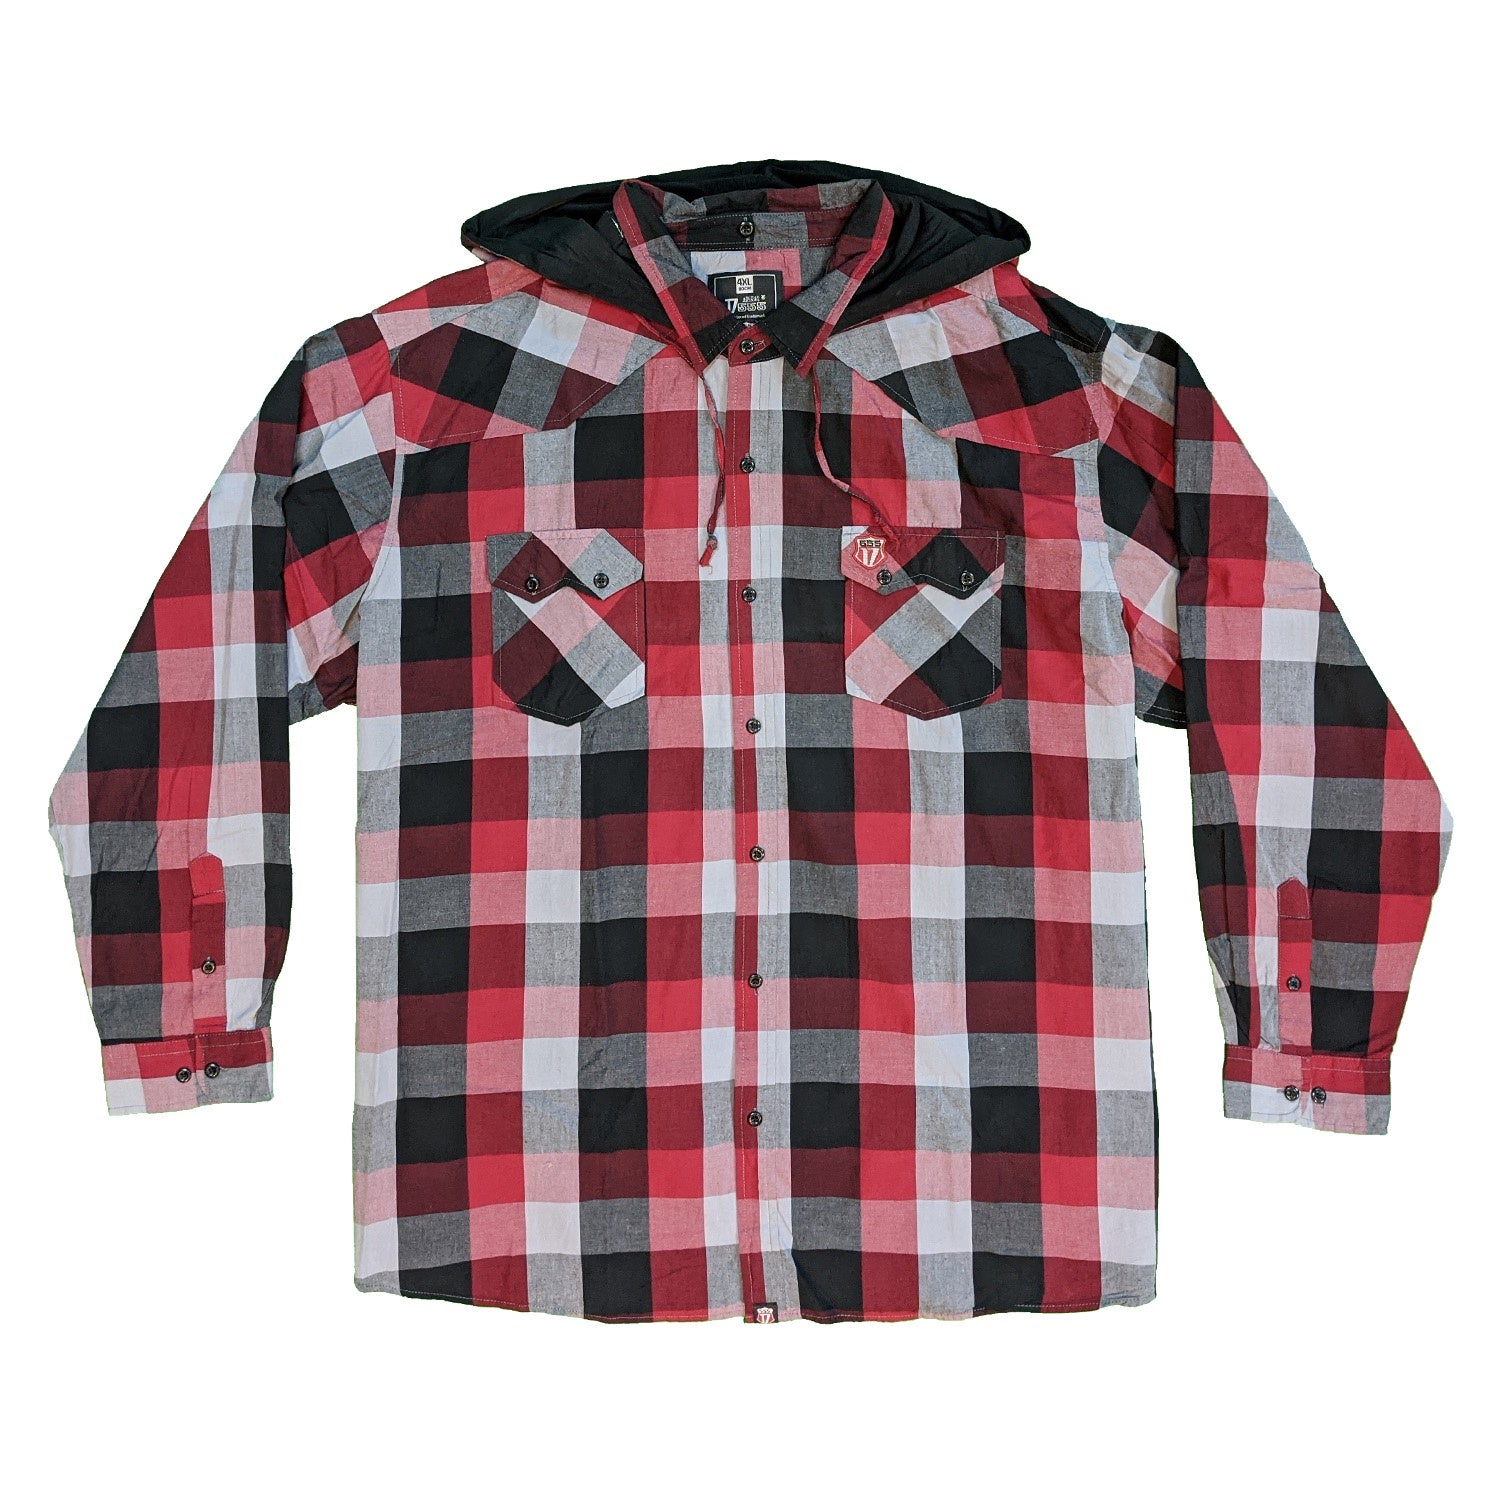 D555 L/S Shirt - KS11042 - Ashton - Red / Black / Grey 1